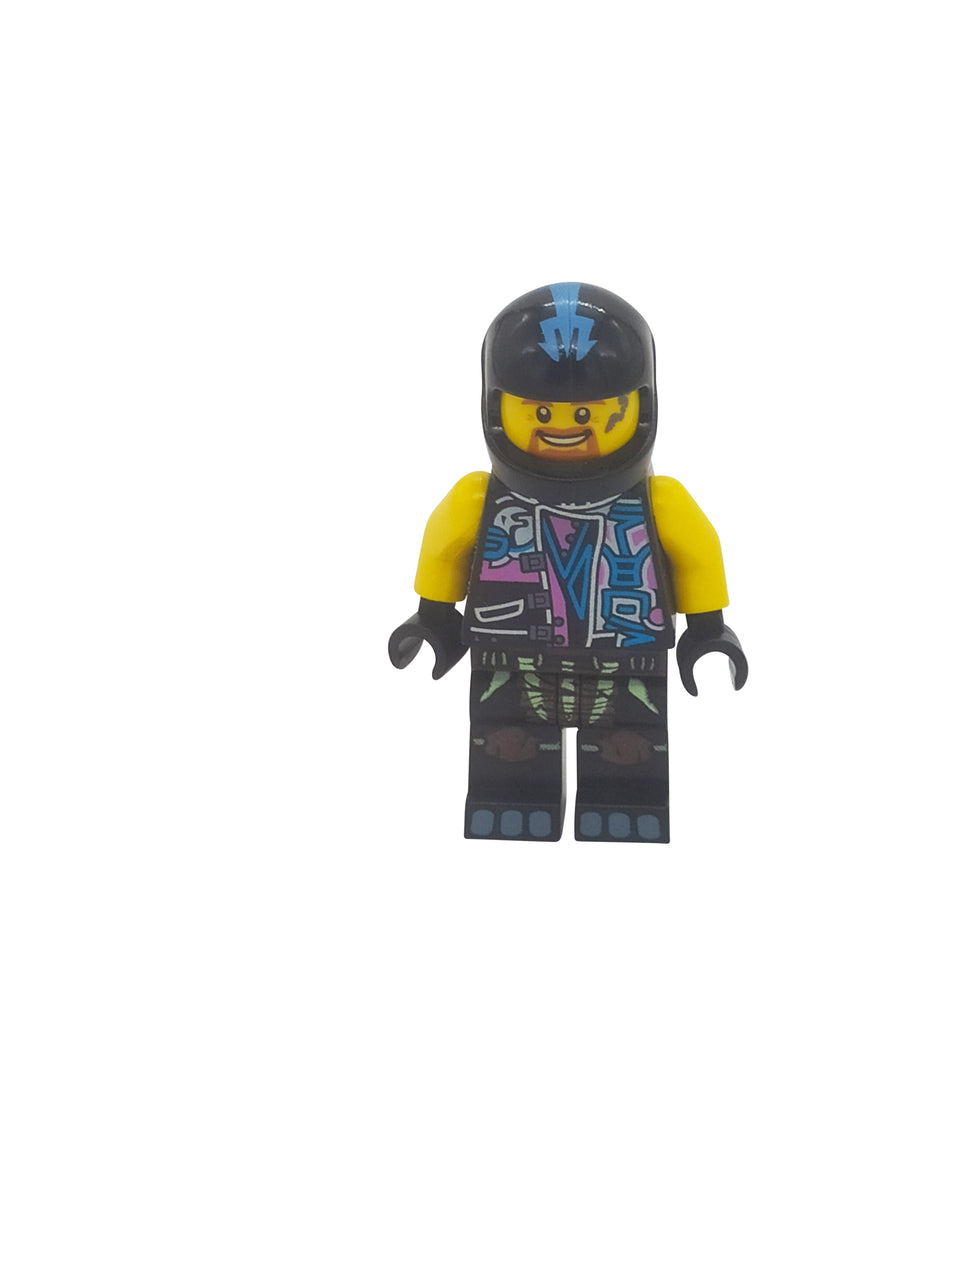 Cool character with black helmet - Lego